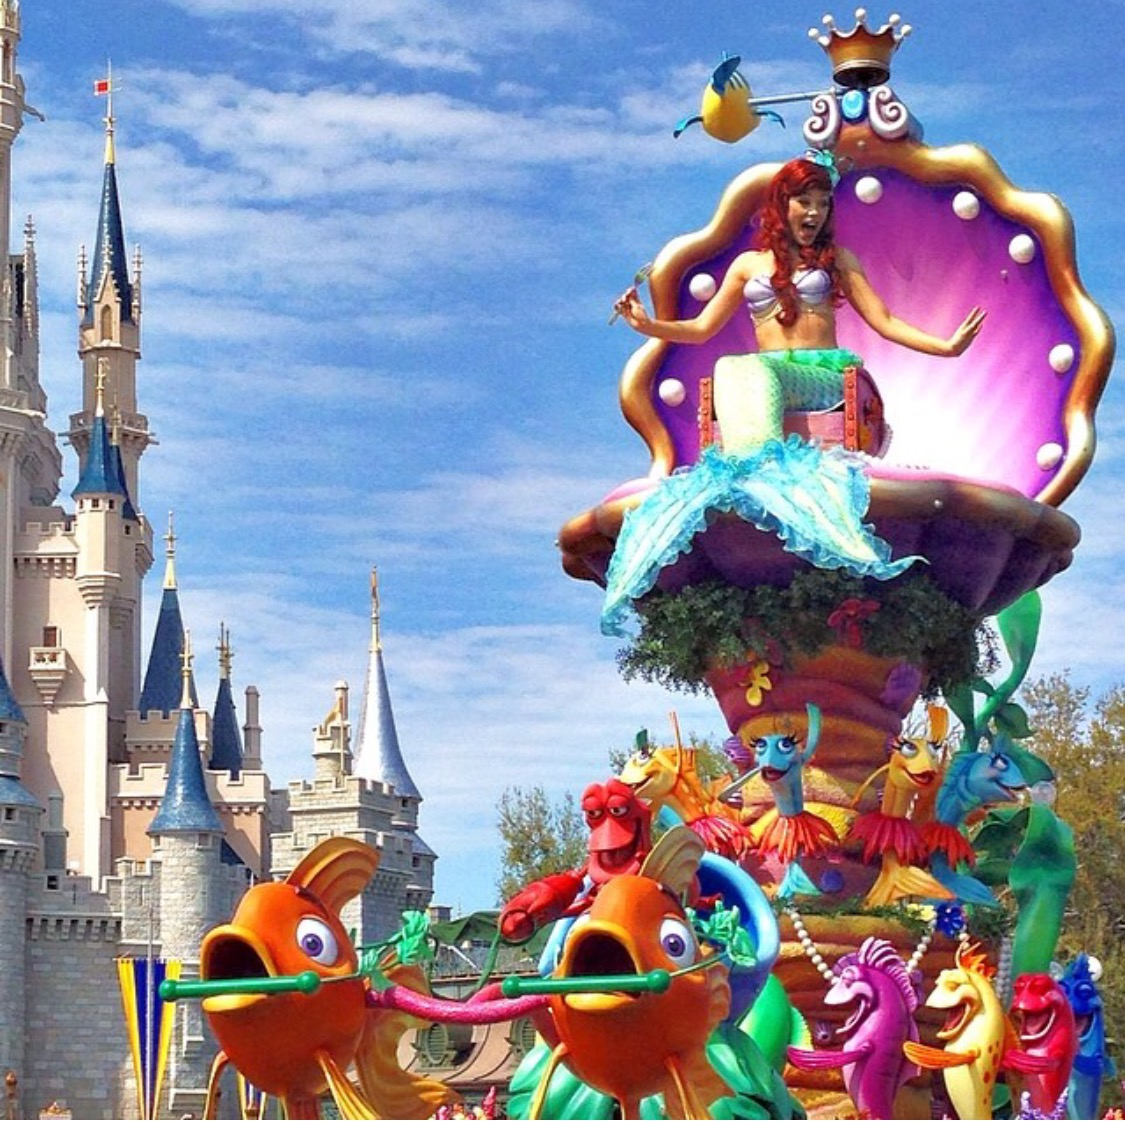 Wordless Wednesday Festival of Fantasy Parade Magic Kingdom Walt Disney World Ariel Little Mermaid